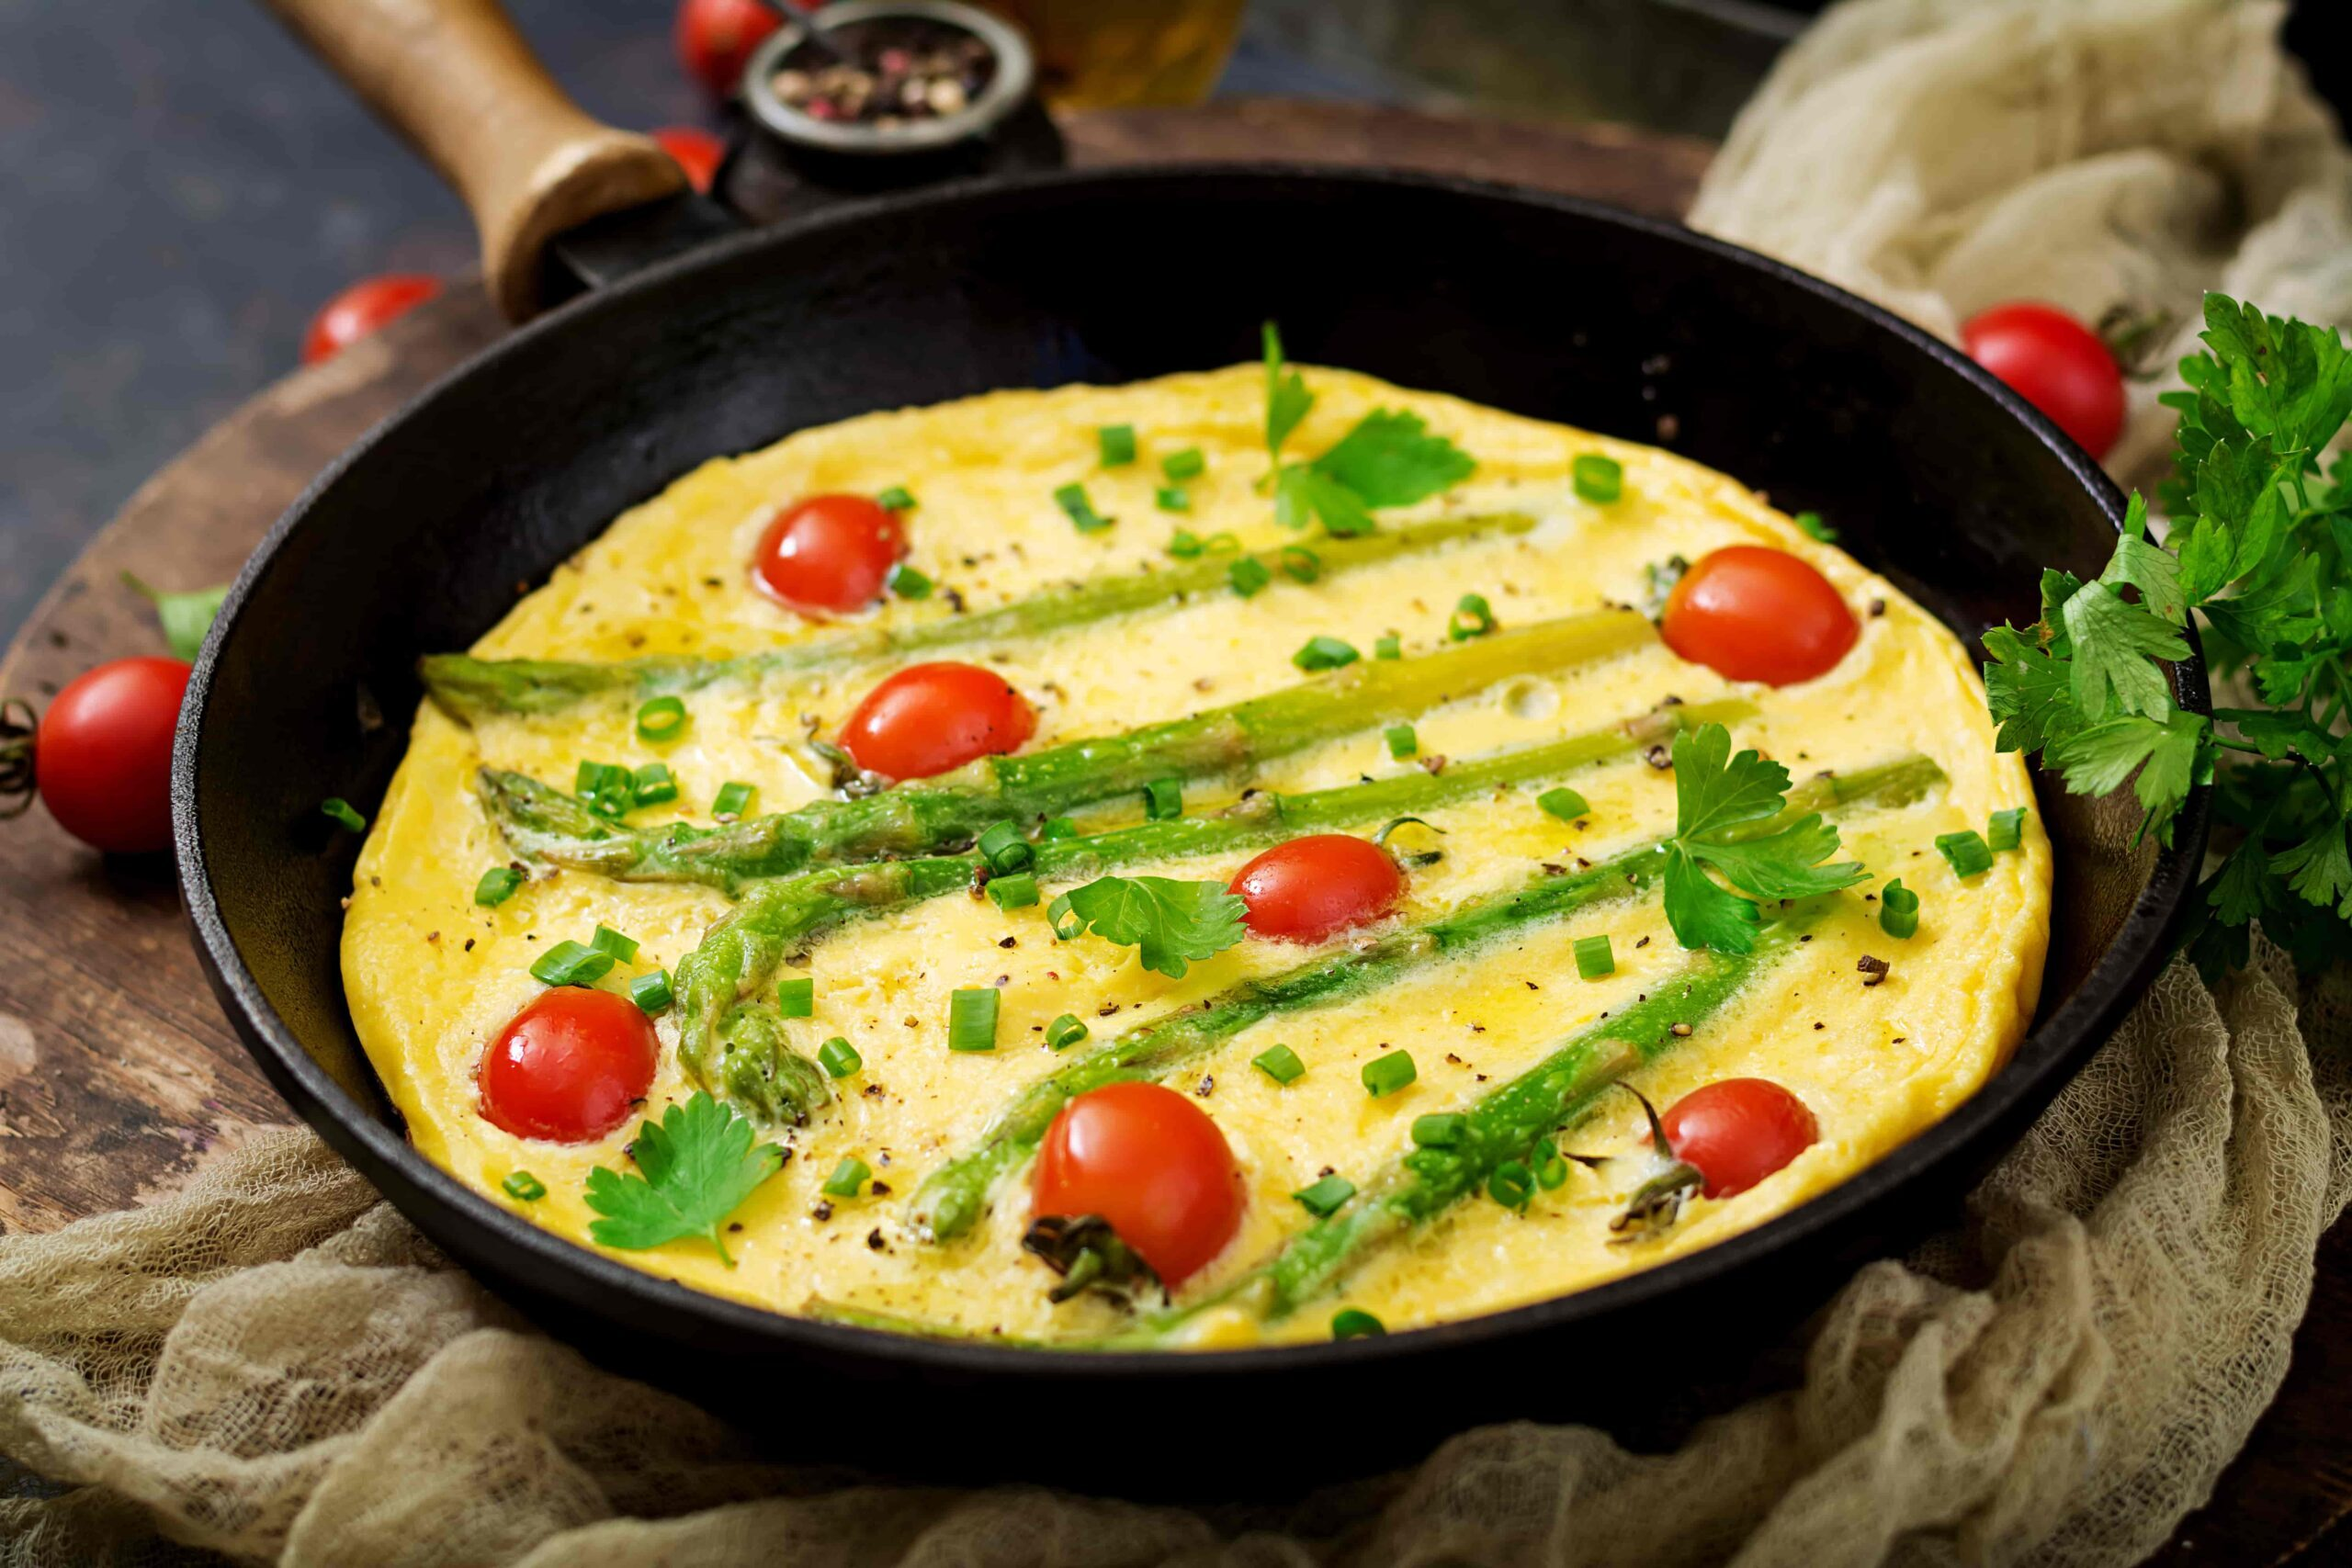 omelette-omelet-with-tomatoes-asparagus-and-green-pqn2d87-min-2492381